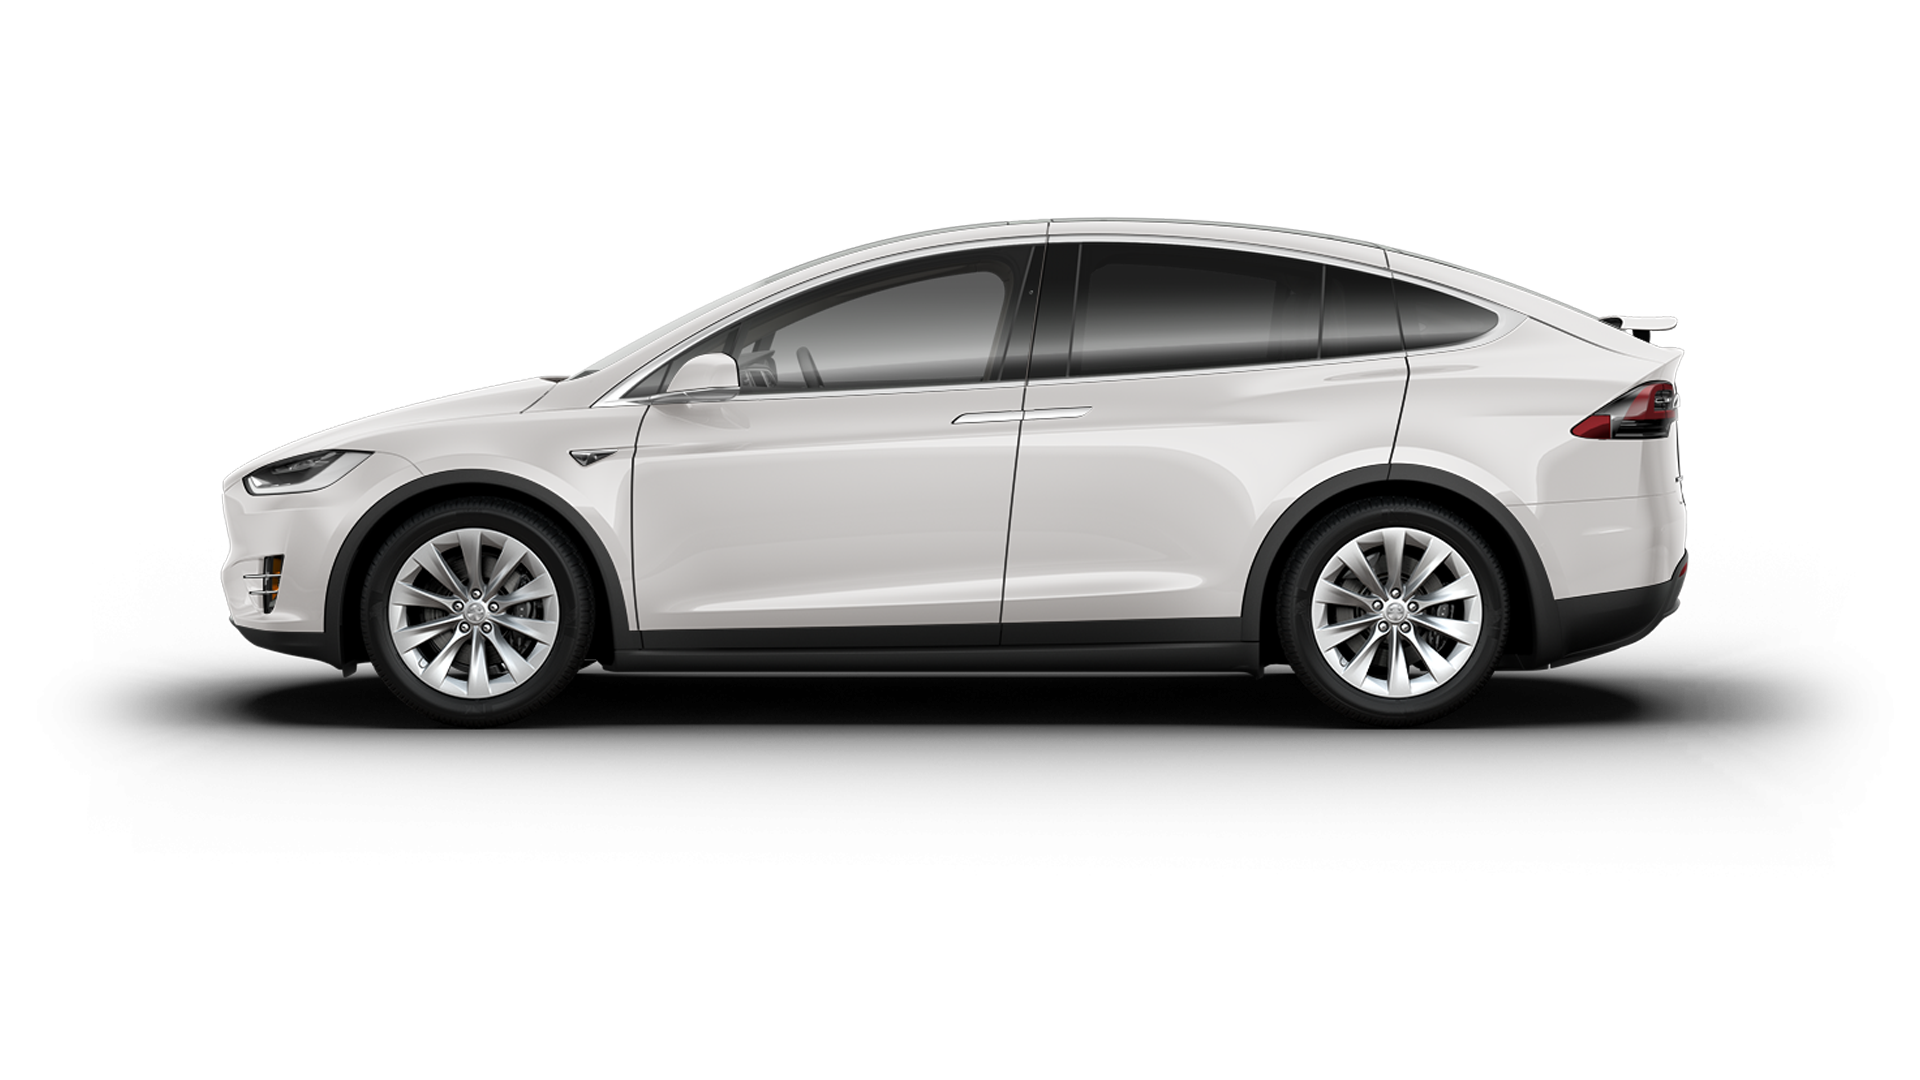 Rentals Include  Tesla Autopilot . The Safest and Most Effortless Highway Driving Experience Between San Diego and Los Angeles.